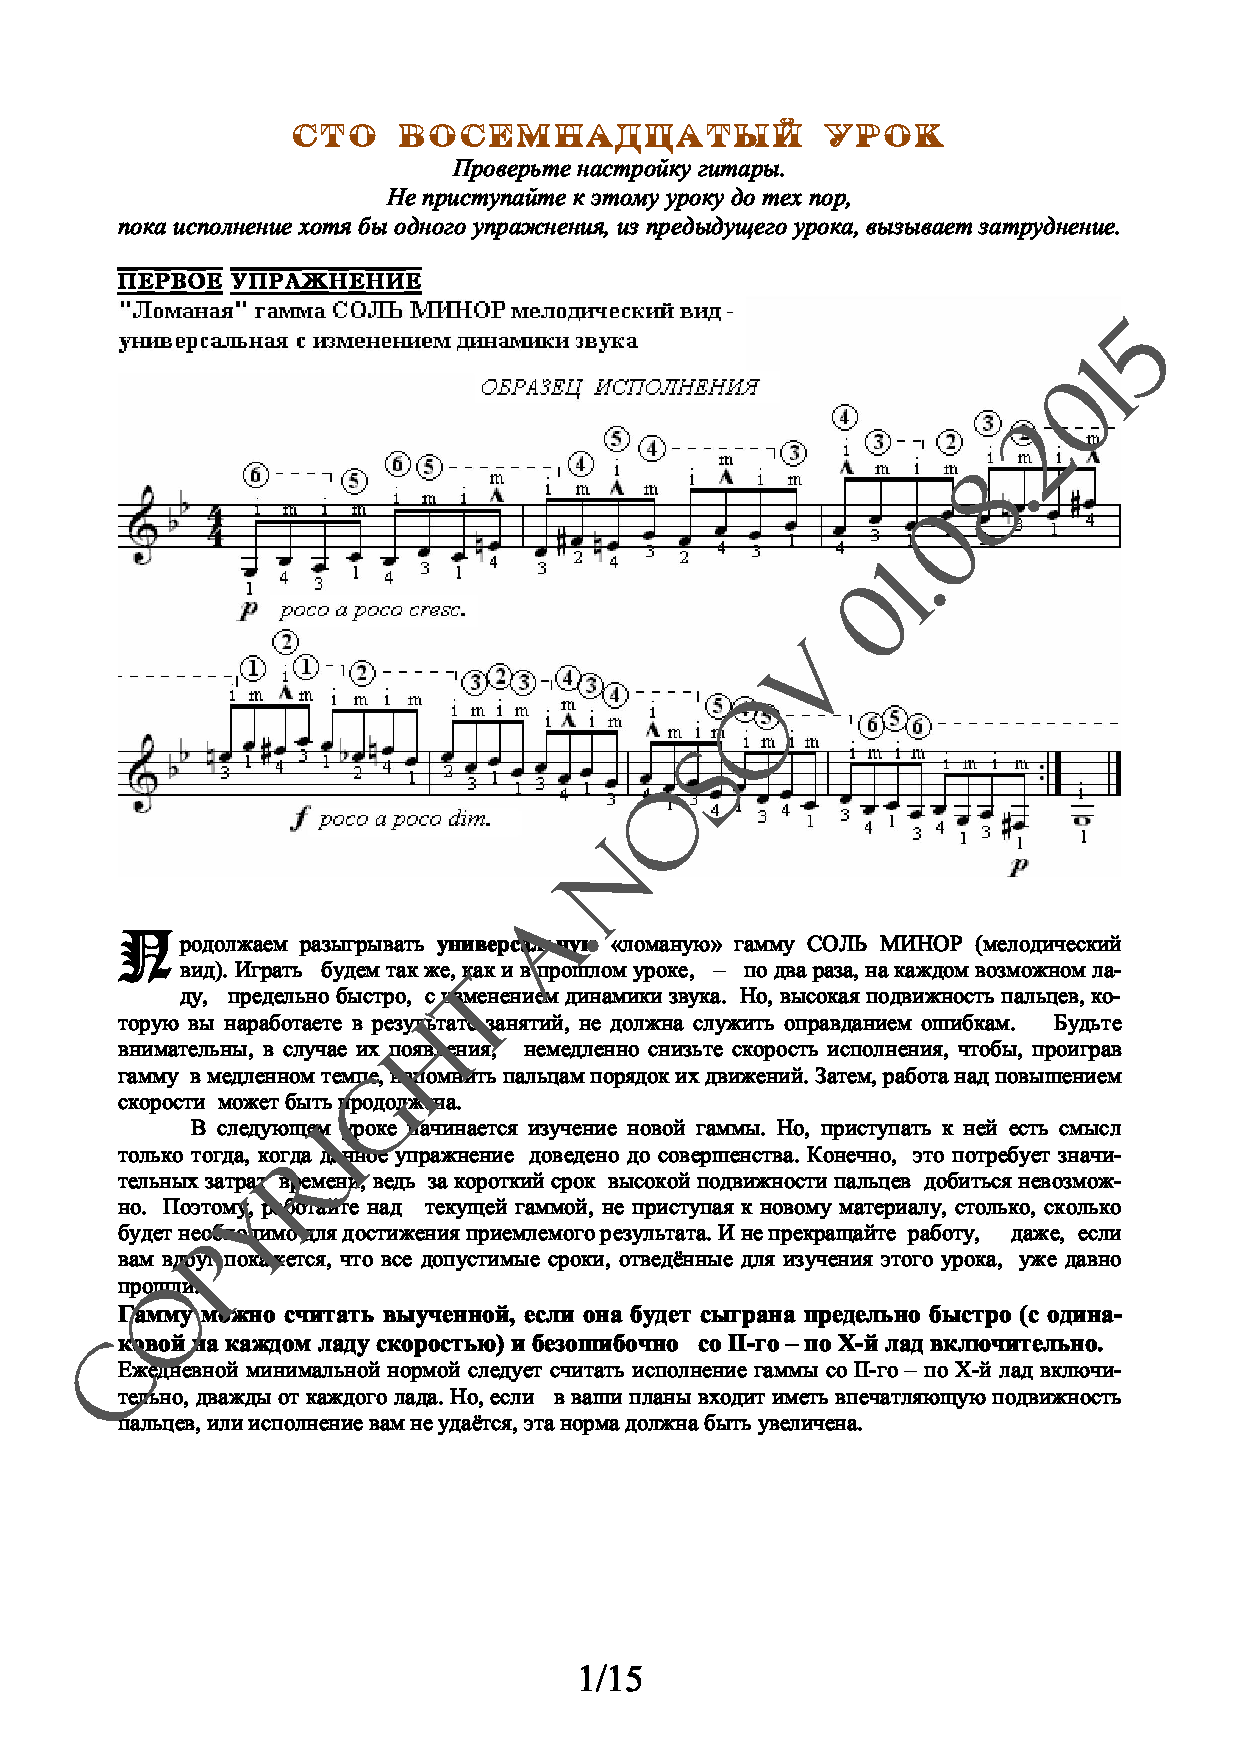 Guitar School A.Nosova, 118th lesson (of 165)